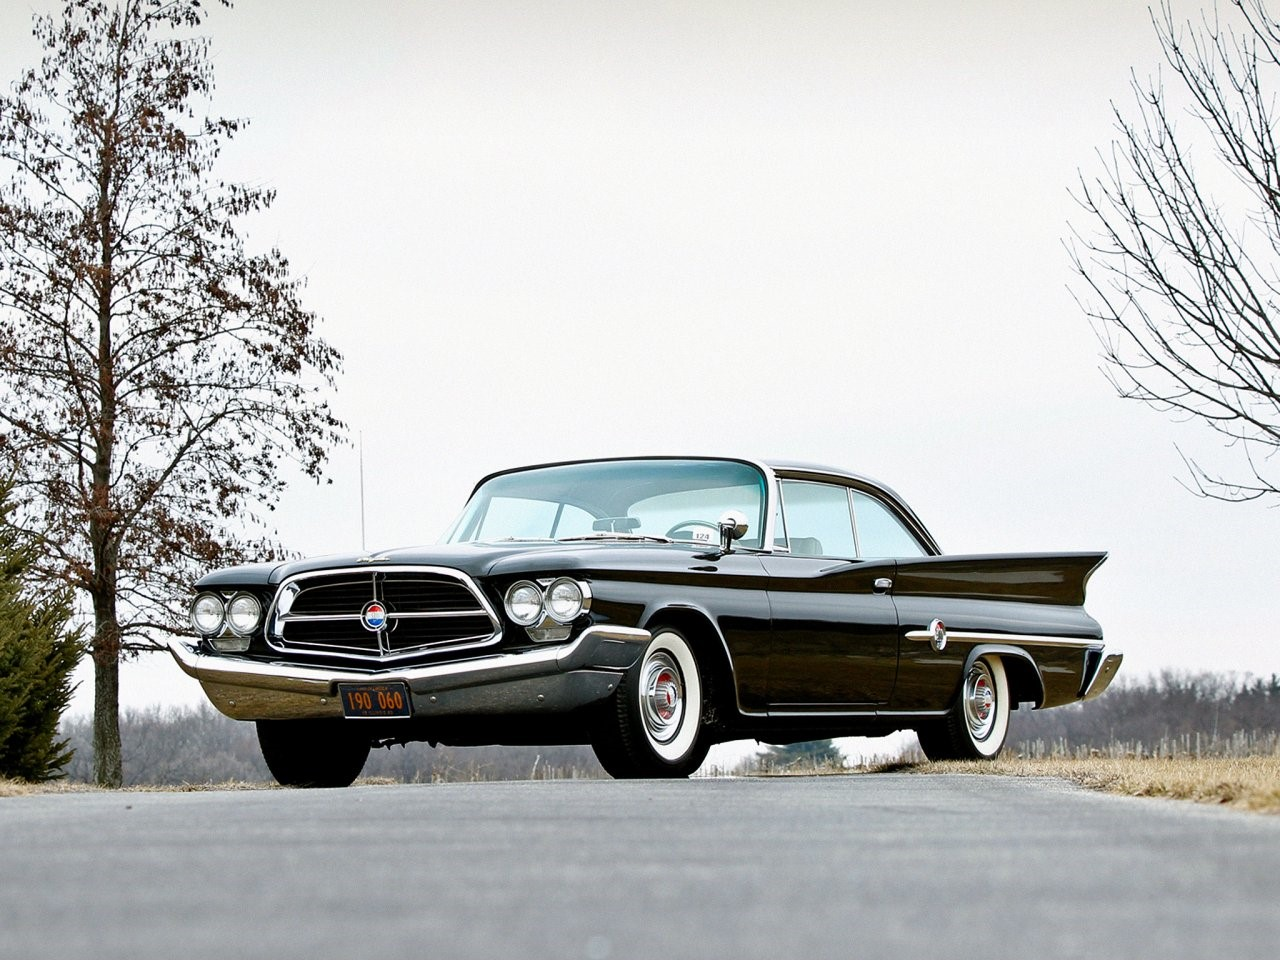 1960 Chrysler 300F hardtop coupé 6